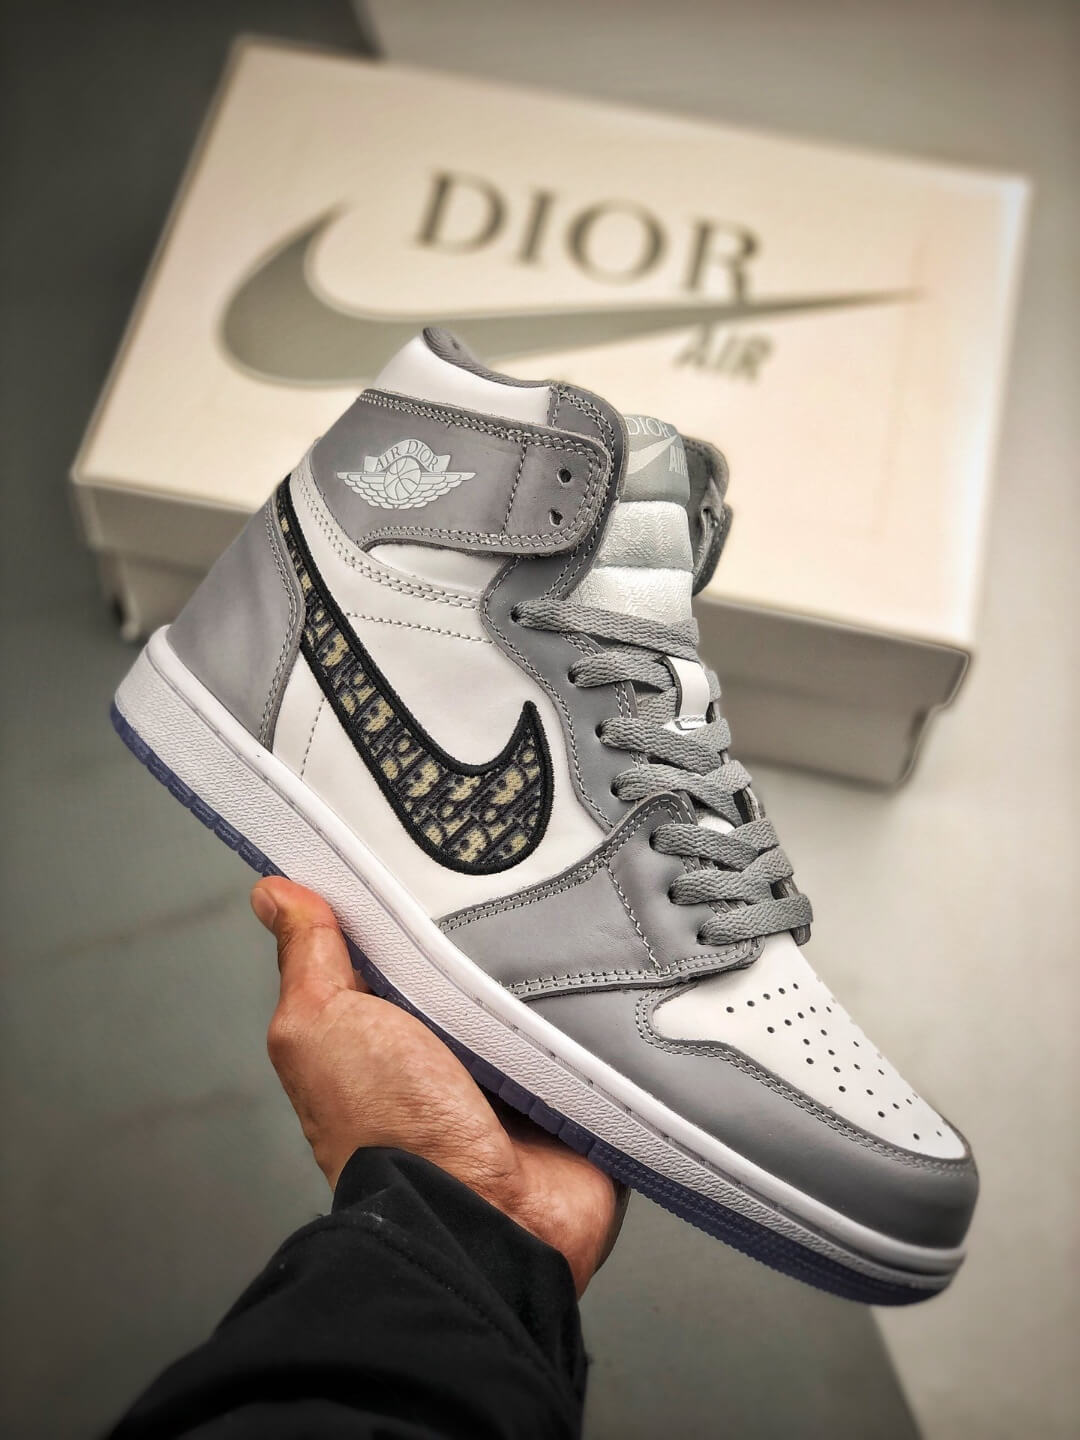 the dior x air jordan 1 high sneaker white and grey upper top repshoes the quality replica sneakers supplier in china the dior x air jordan 1 high sneaker white and grey upper top repshoes